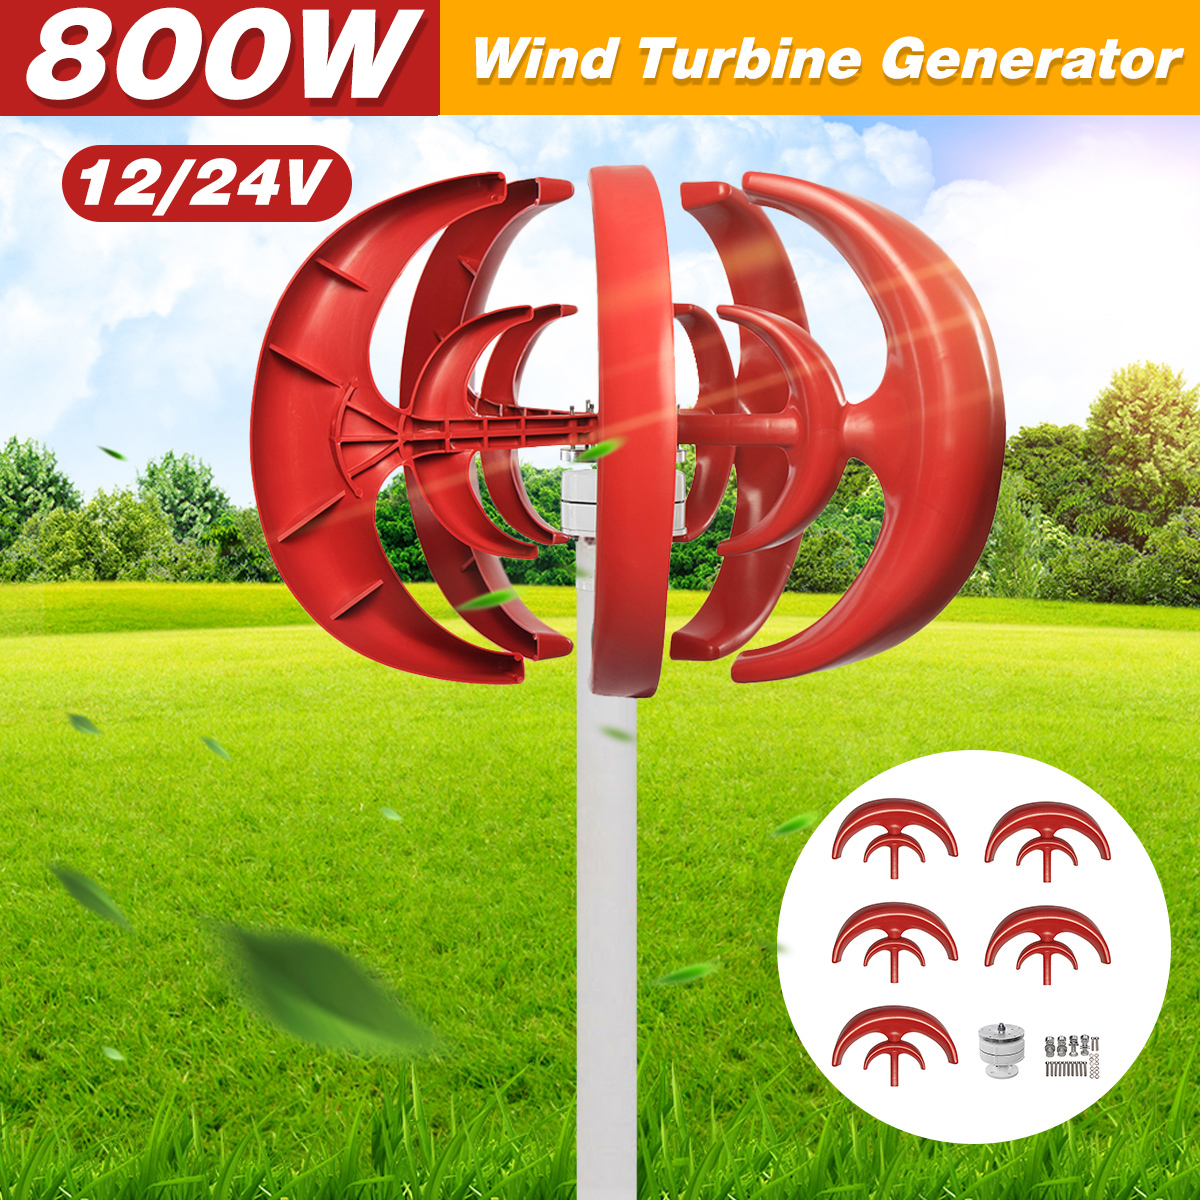 Max <font><b>800W</b></font> AC 12V 24V <font><b>Wind</b></font> Turbine <font><b>Generator</b></font> Lantern 5 Blades Motor Kit Vertical Axis For Home Hybrid Streetlight Use image